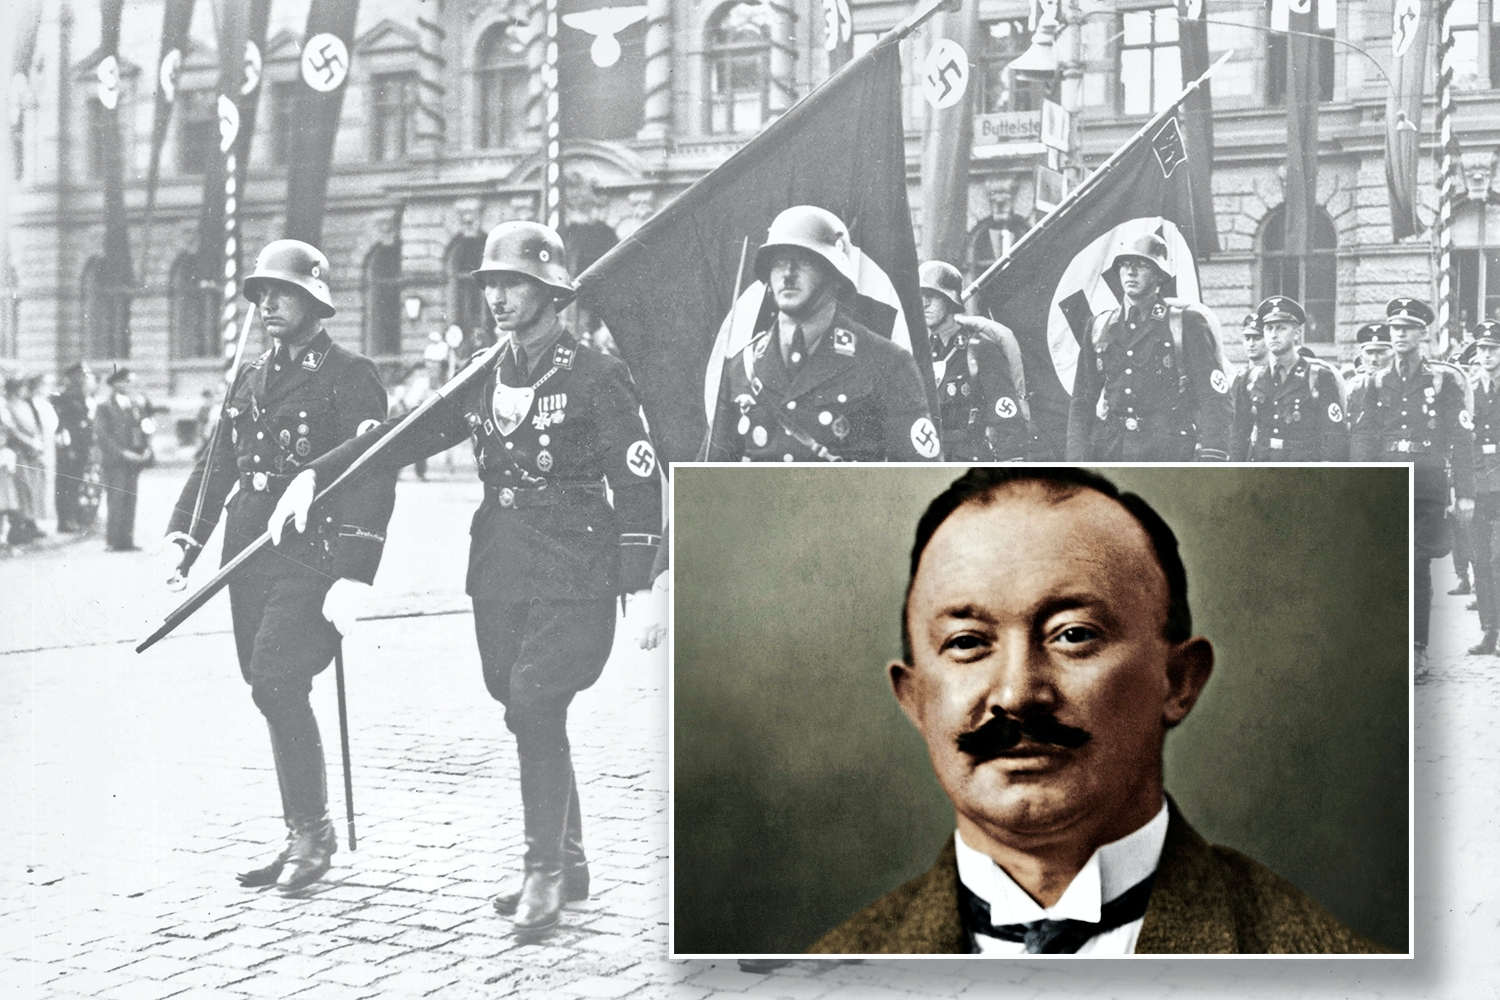 Hugo Boss apology for Nazi past as book is published